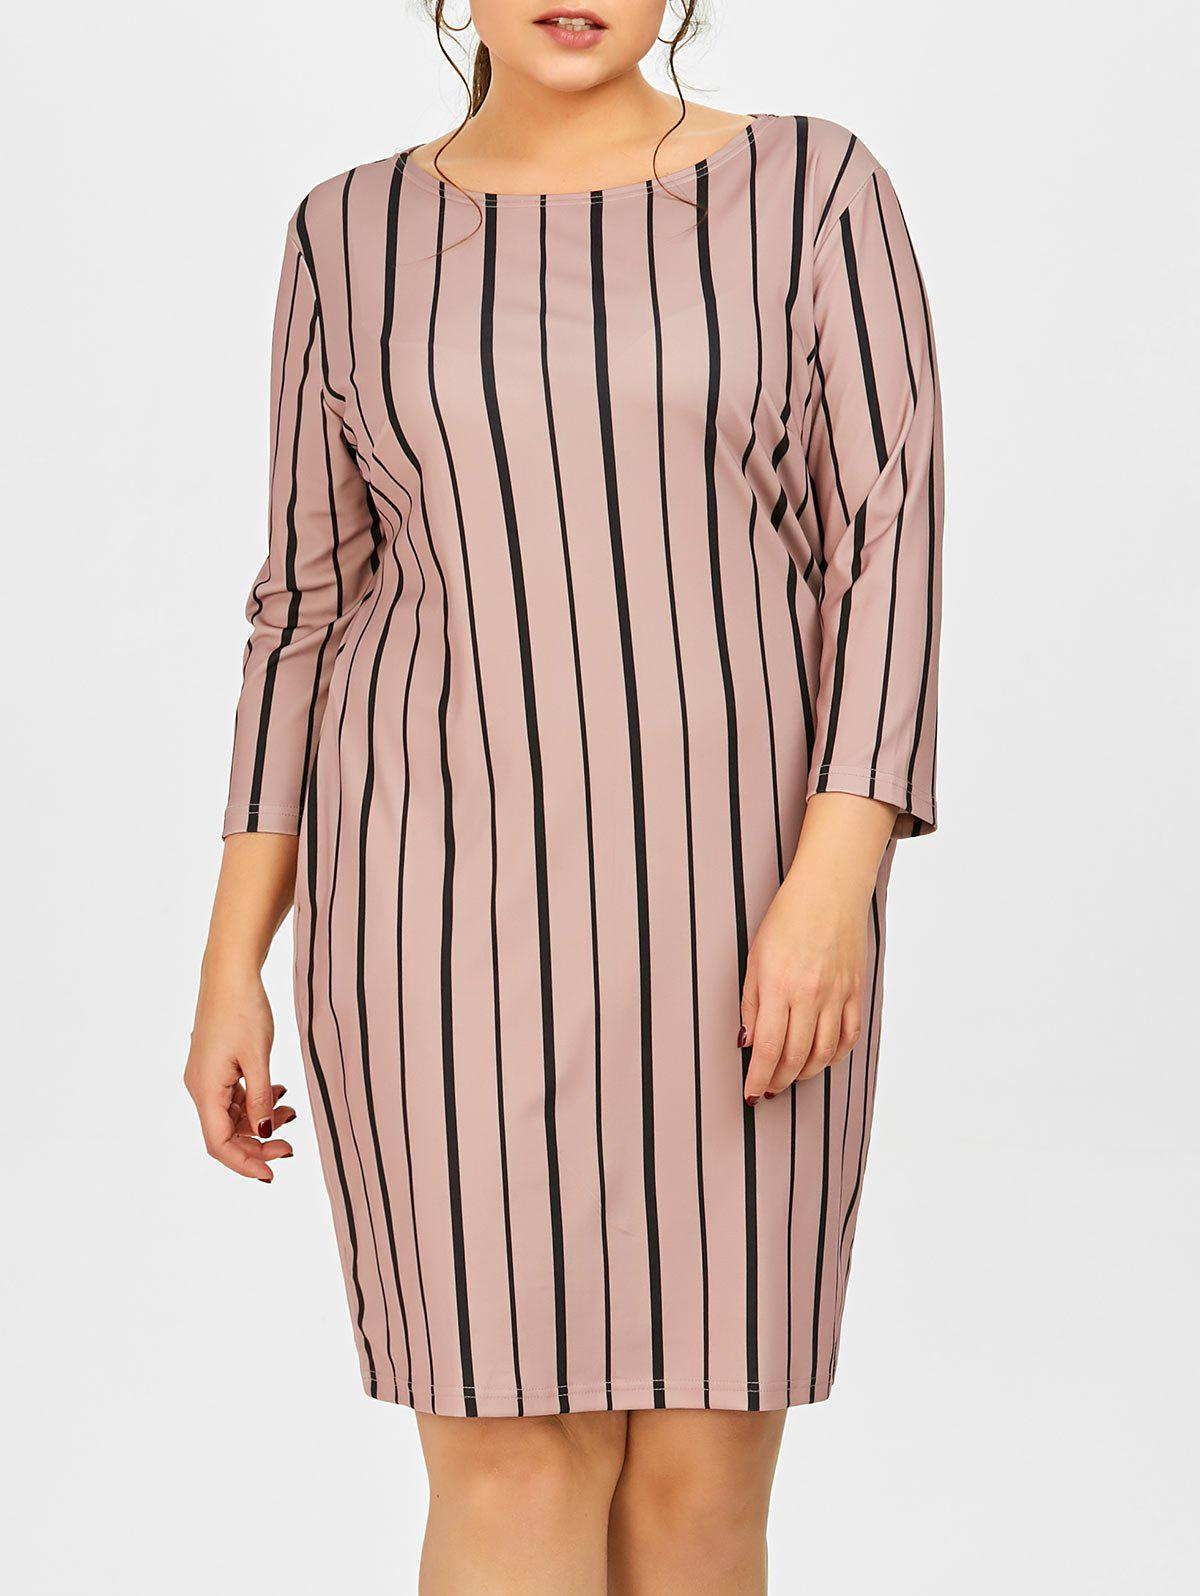 New Plus Size Vertical Striped Dress